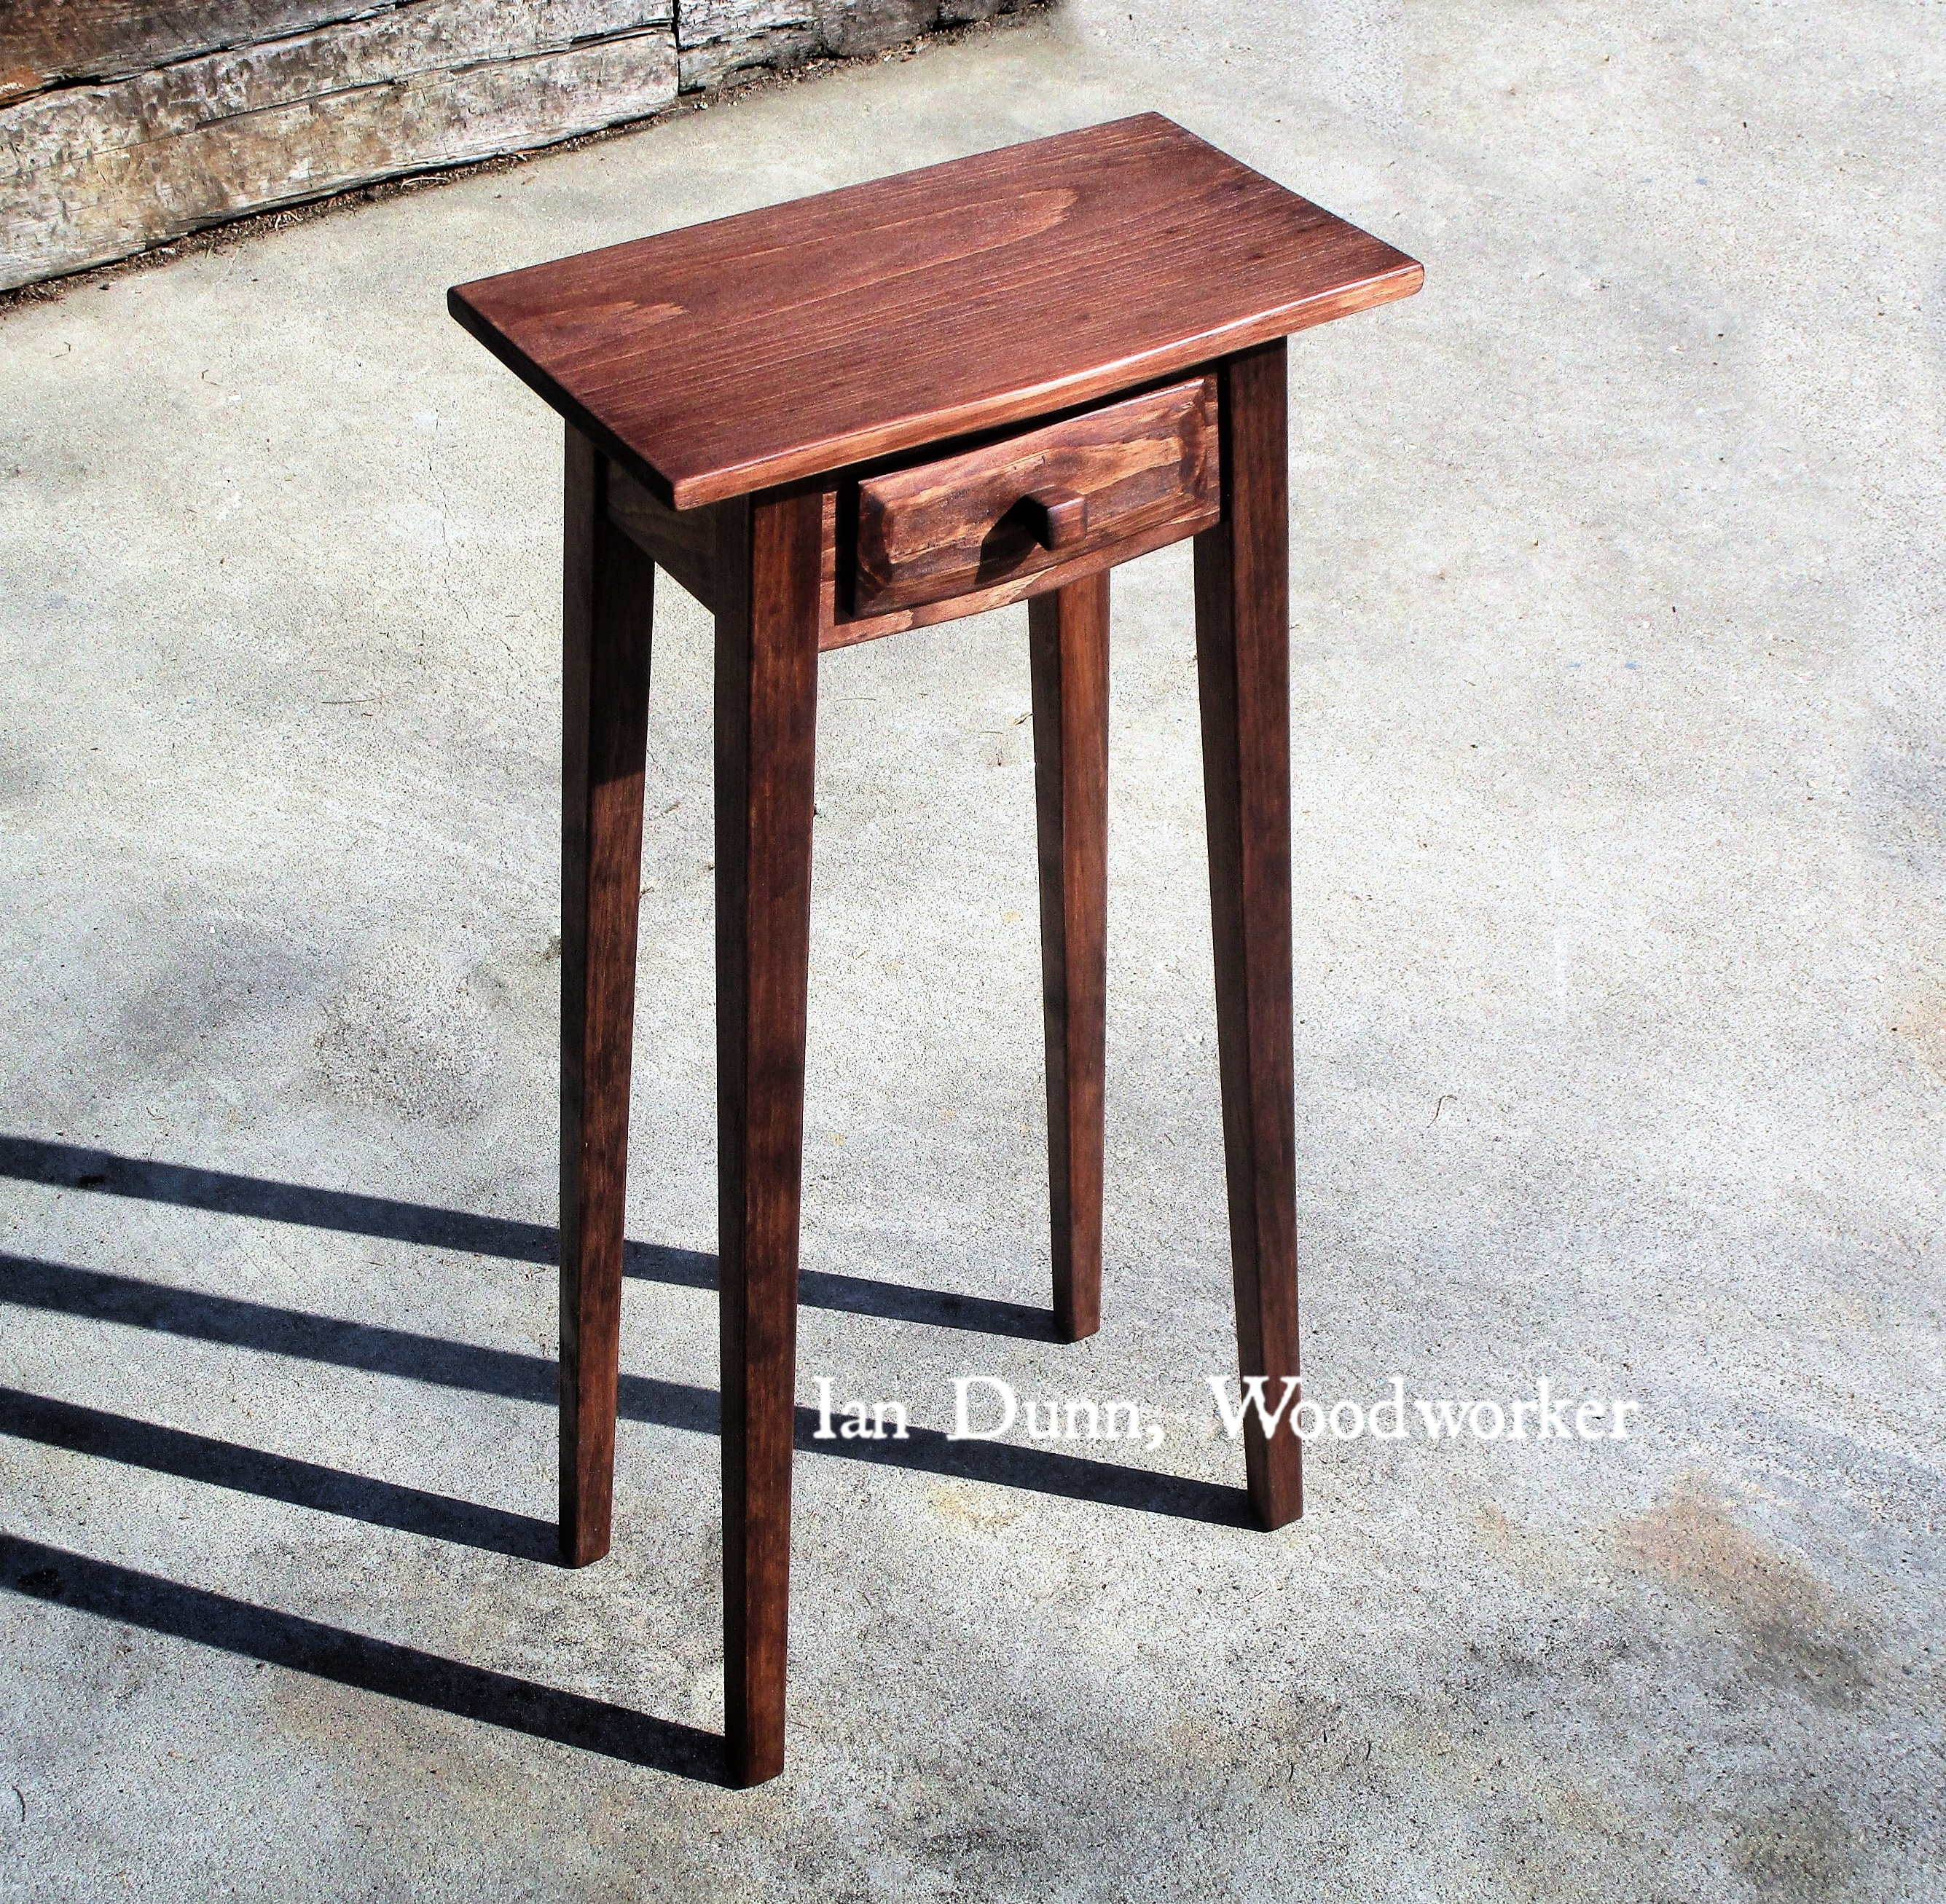 A beautiful small side table